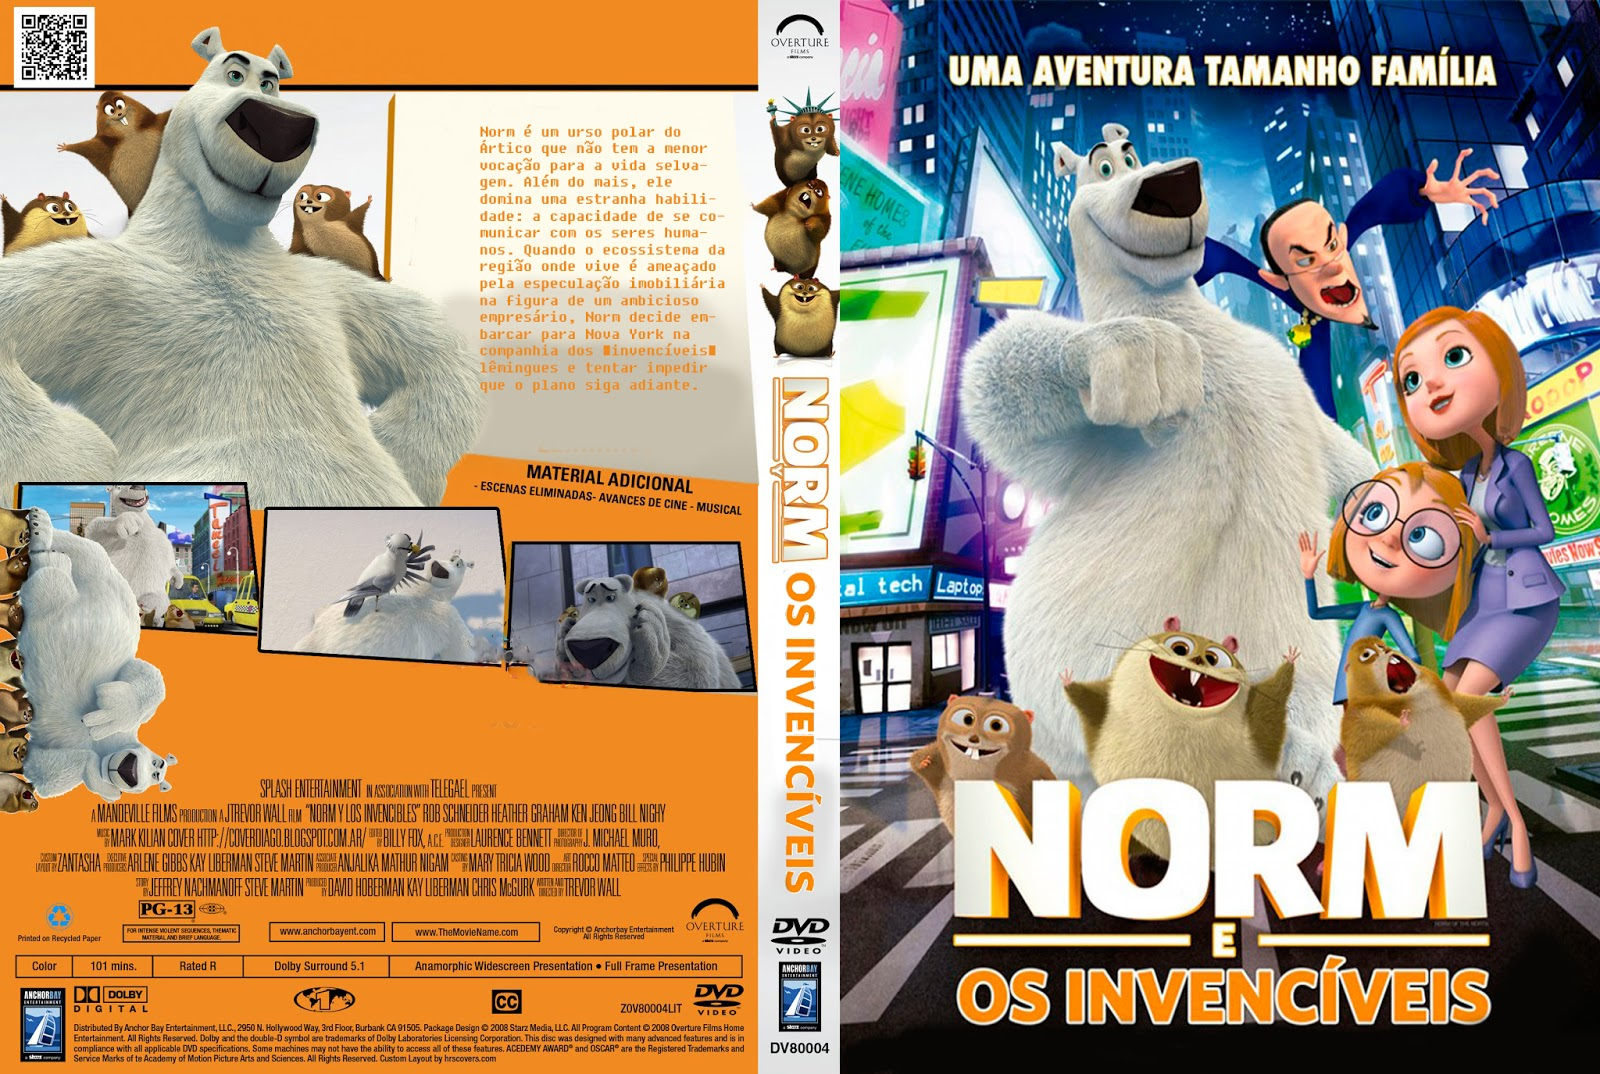 Download Norm e os Invencíveis BDRip XviD Dual Áudio Norm 2Be 2Bos 2BInvenc 25C3 25ADveis 2B 25282016 2529